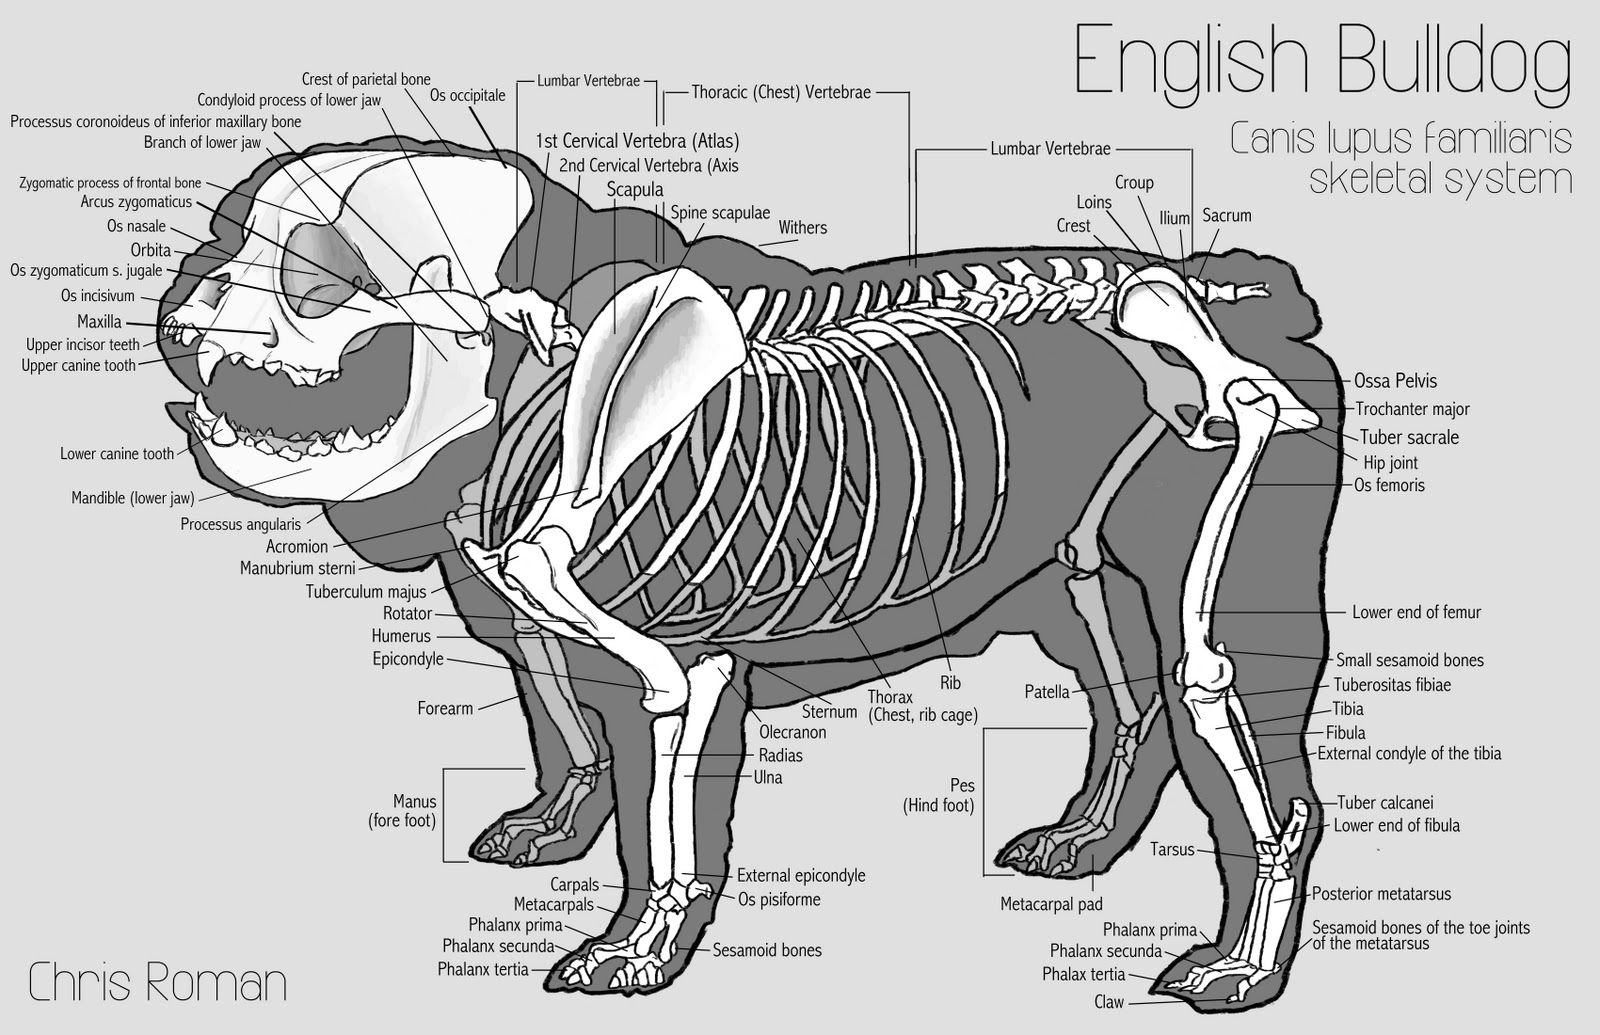 English Bulldog Anatomy Study Dog Anatomy Dog Skeleton English